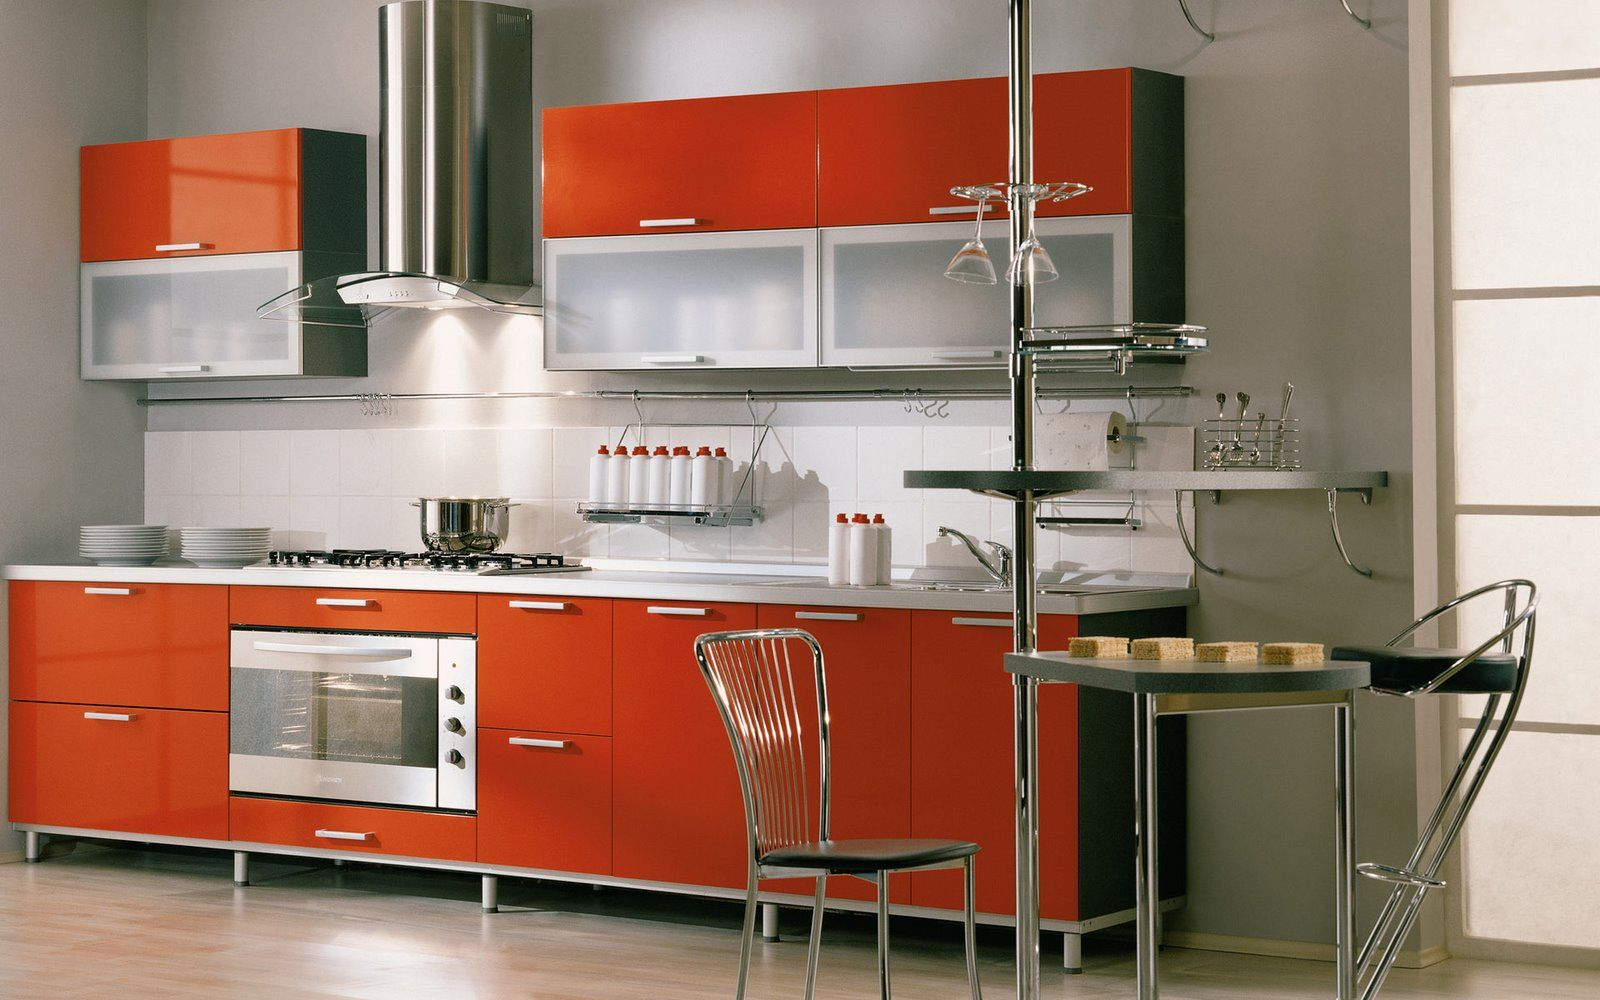 Best Ikea 2014 Kitchen Catalog  Kitchen Design And Layout Ideas Entrancing Small Kitchen Design Ideas 2014 Review